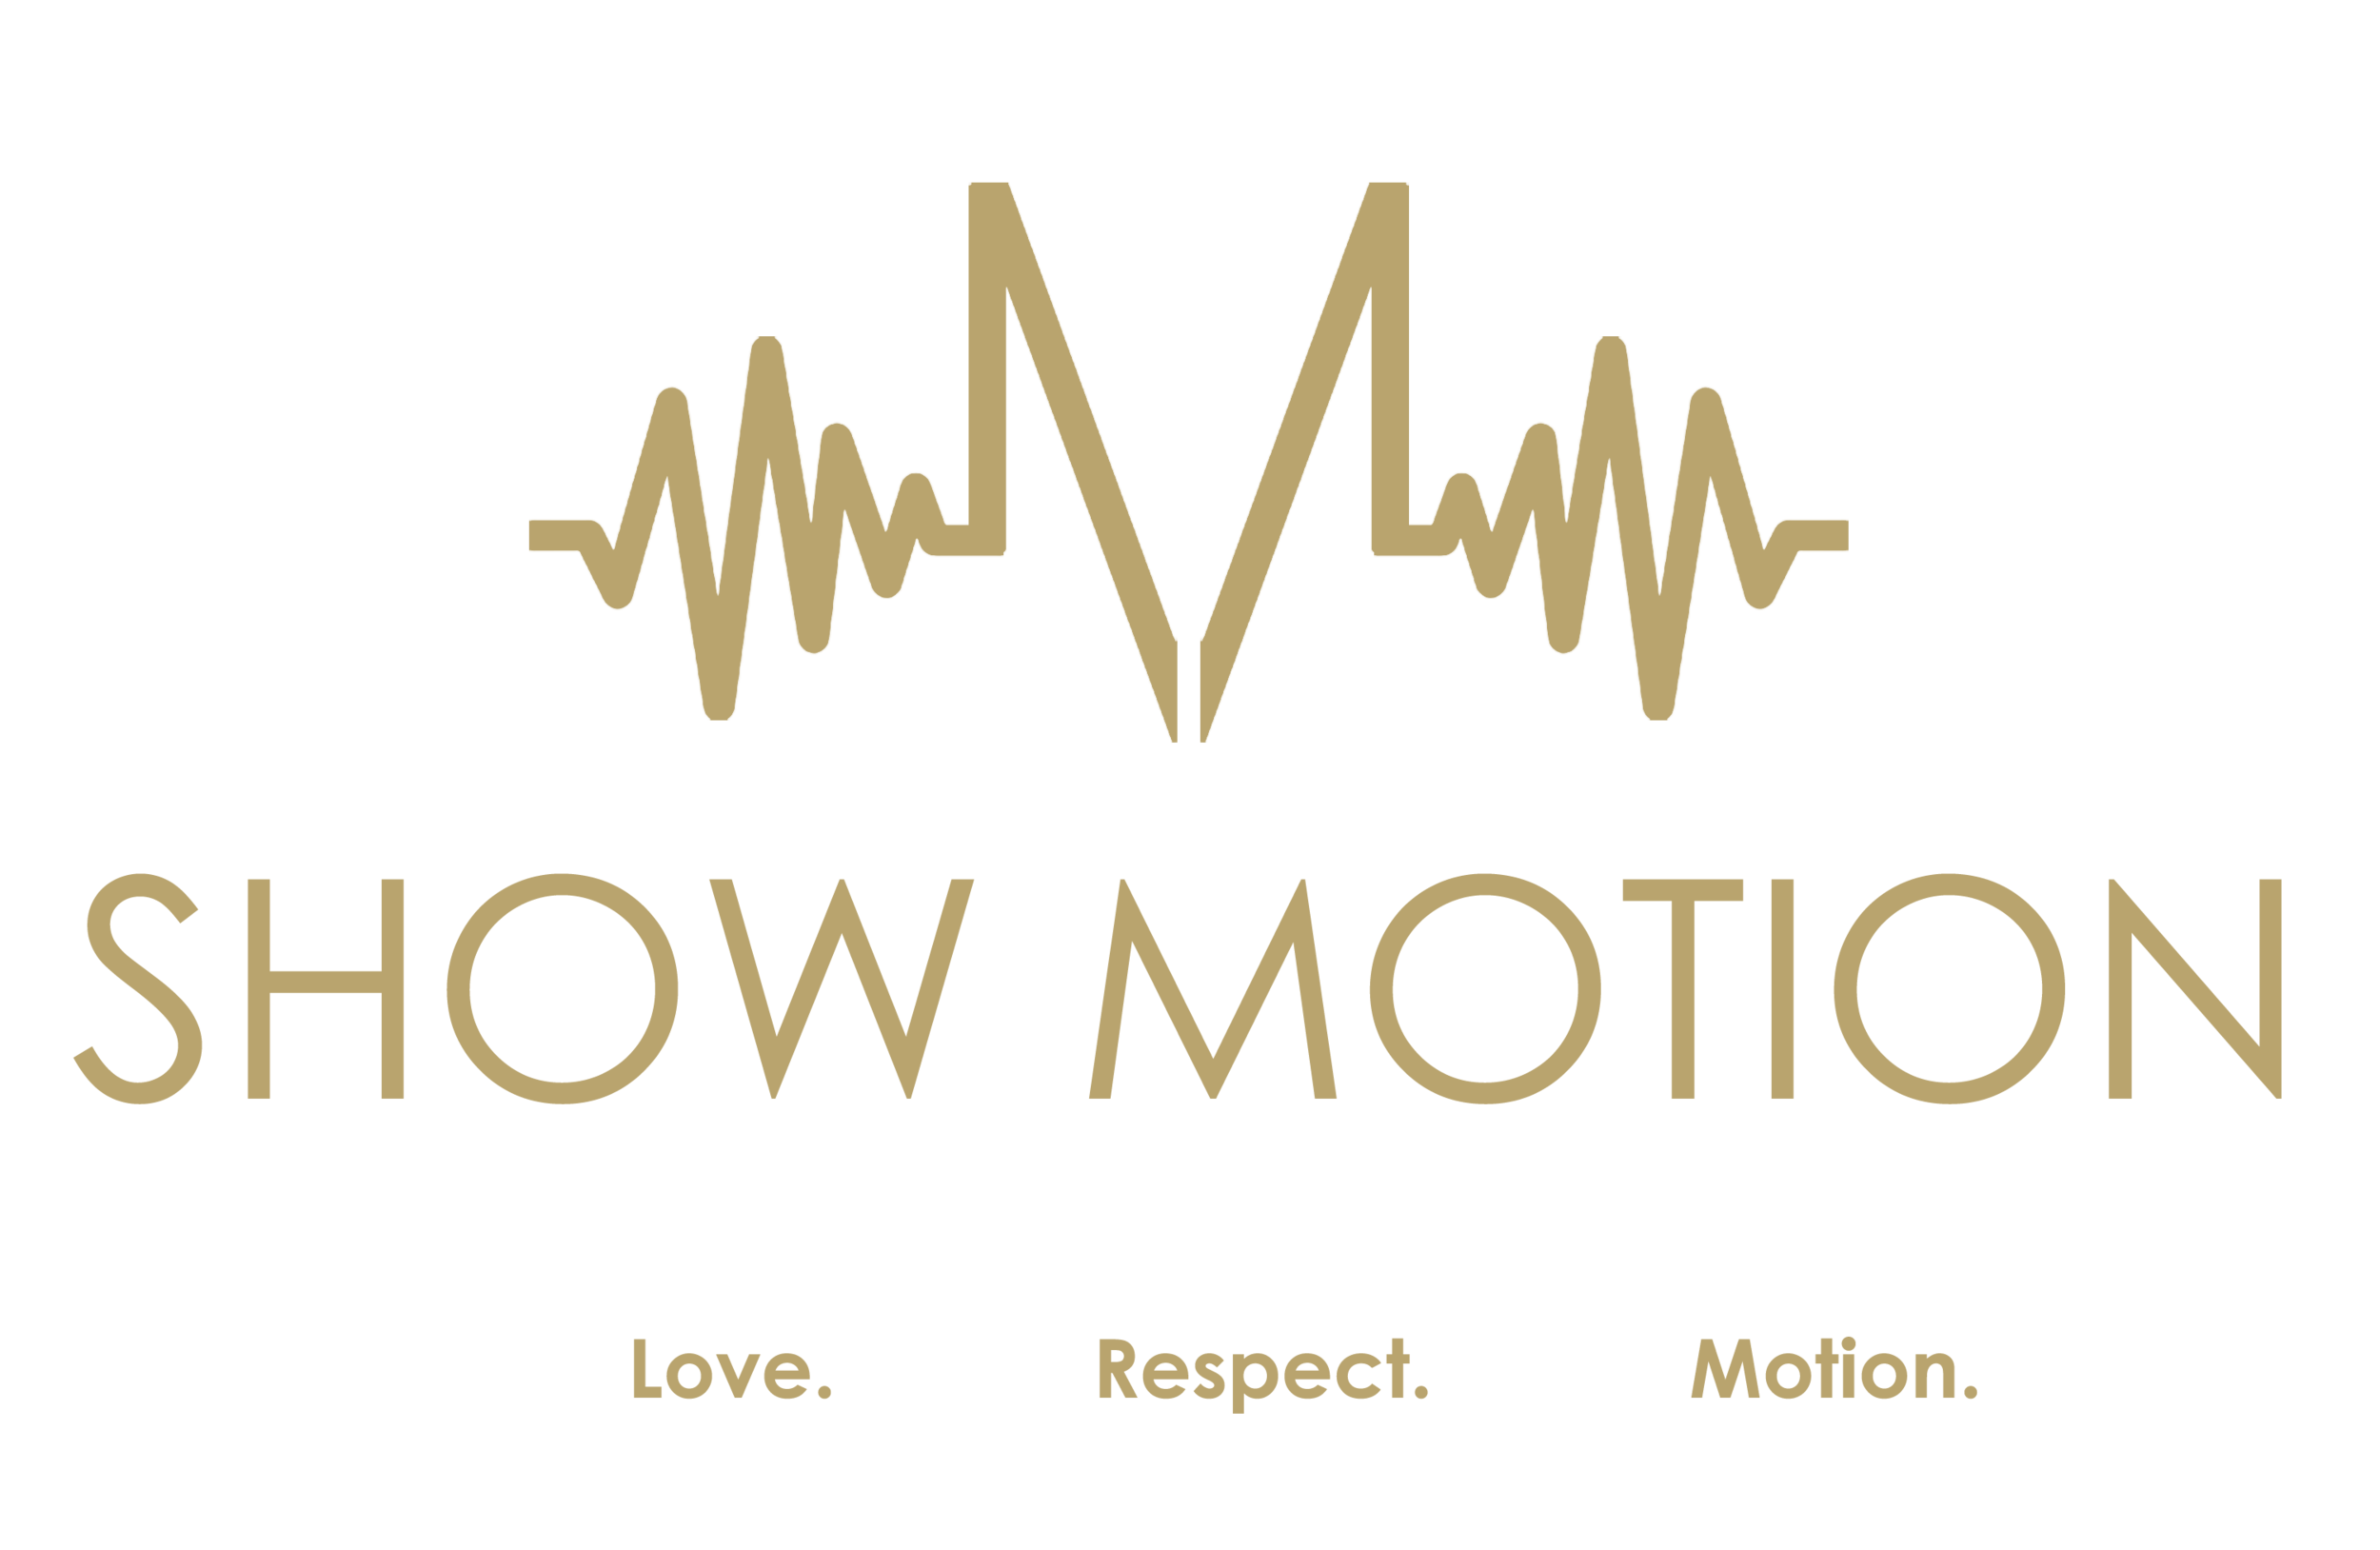 SHOW MOTION LOGO final.png